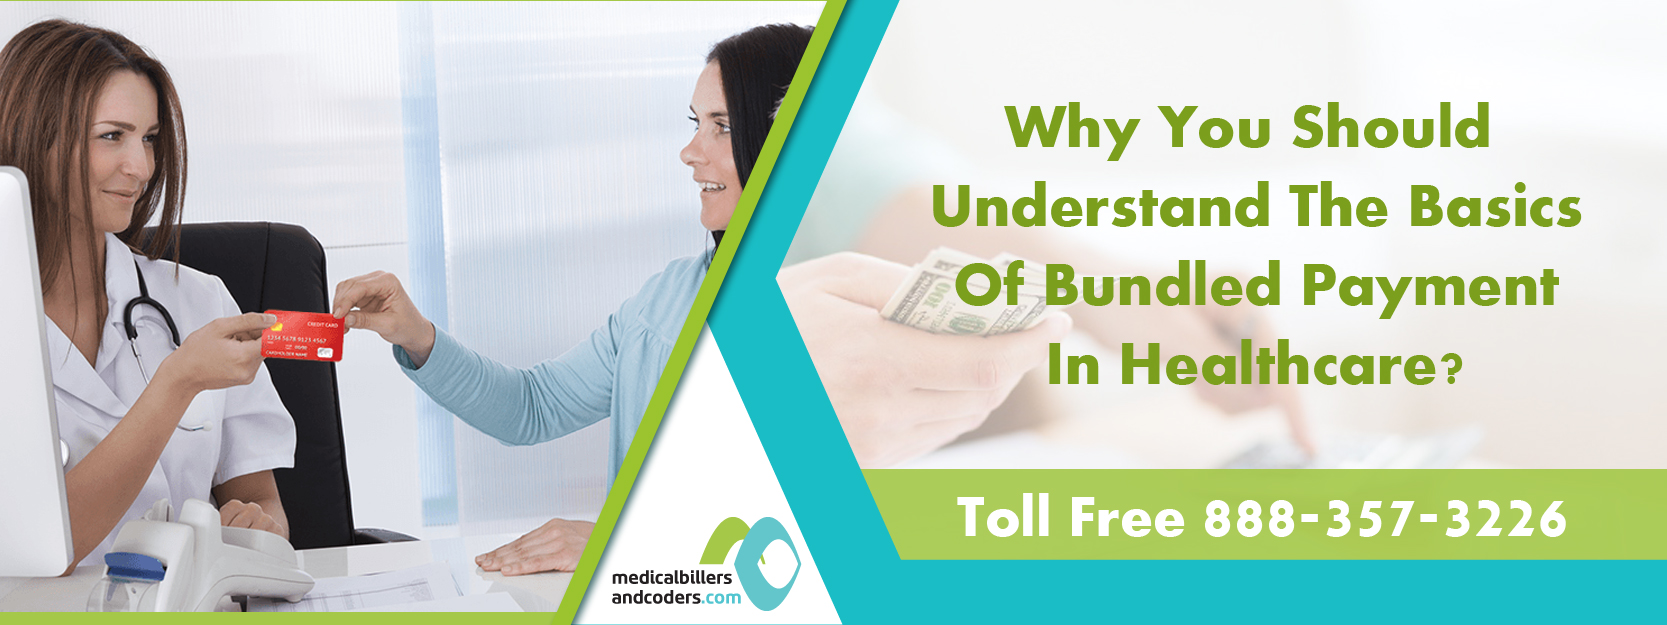 Why You Should Understand the Basics Of Bundled Payment In Healthcare